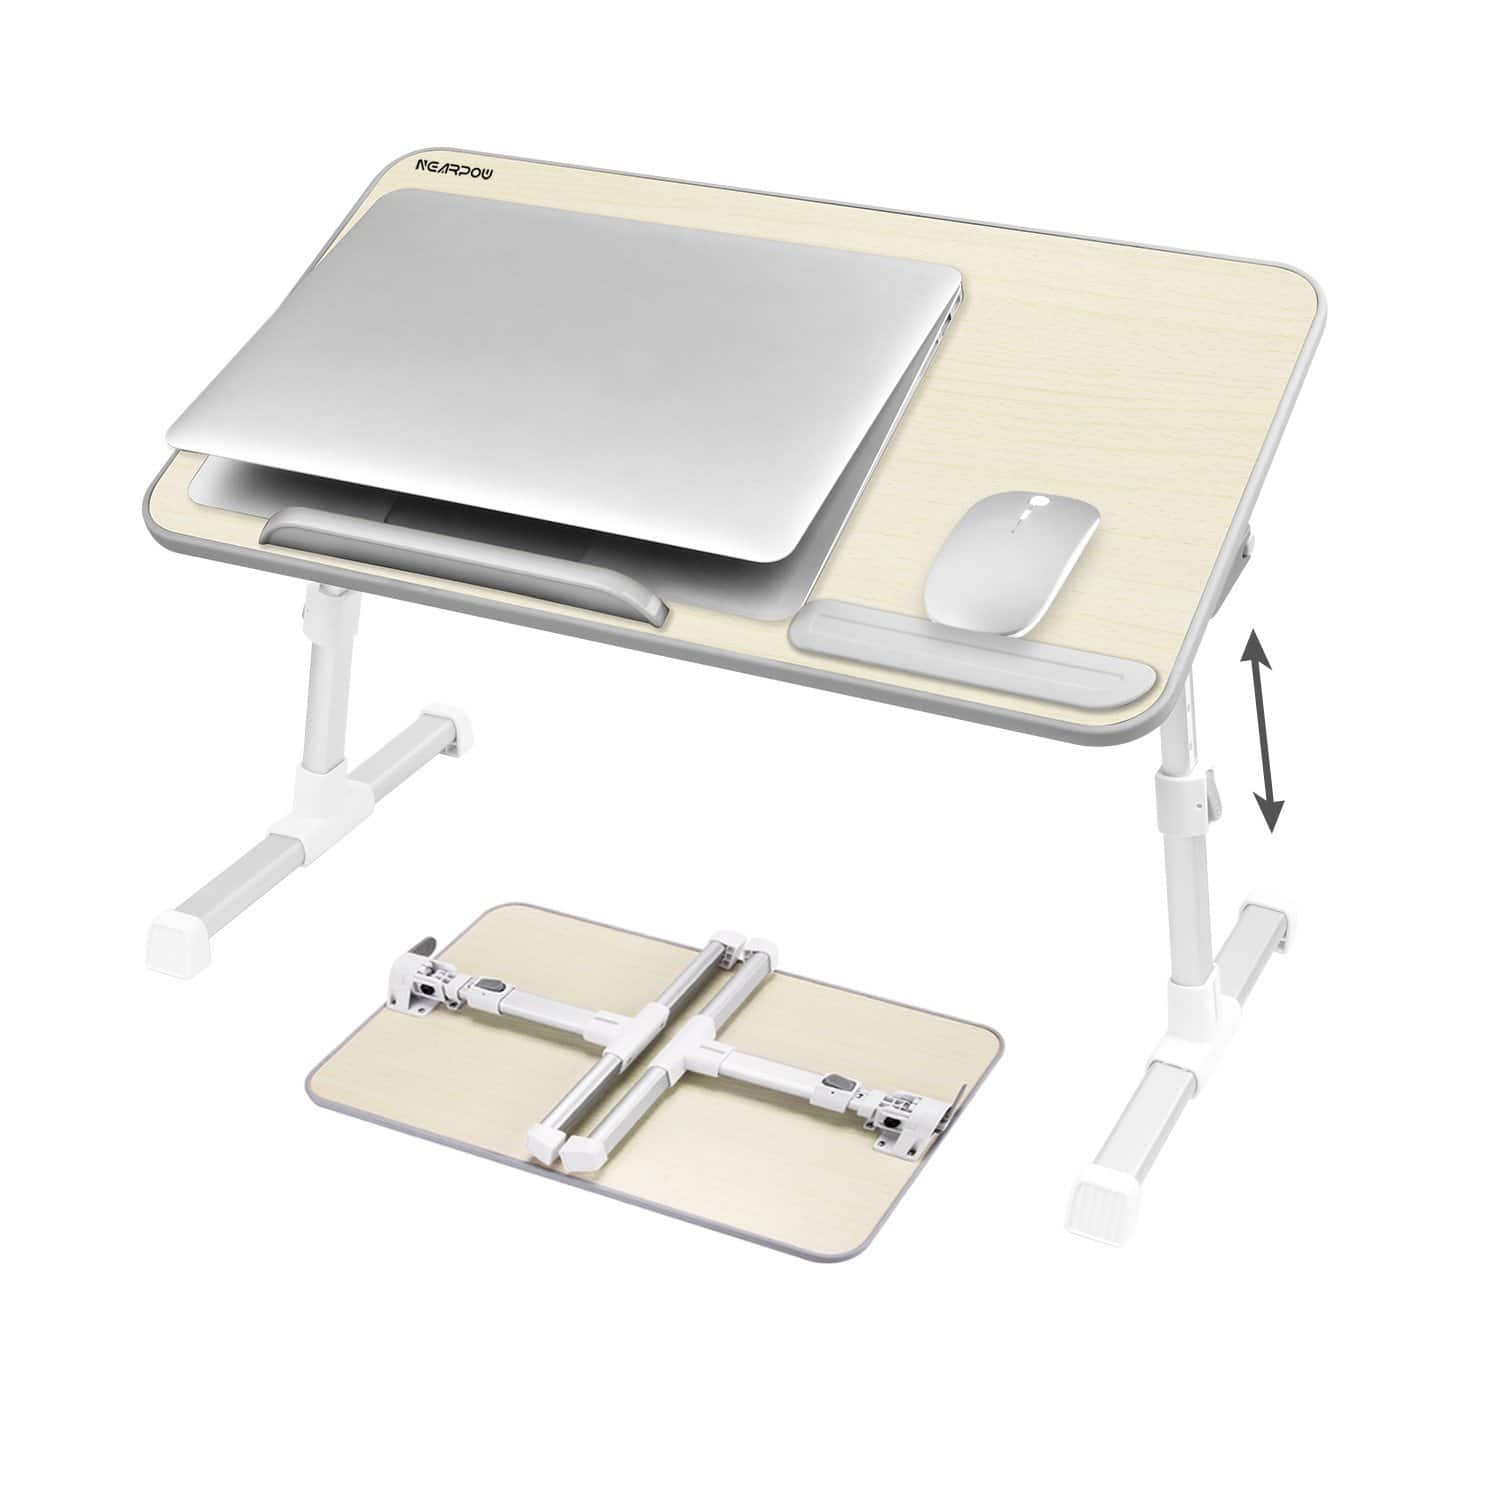 Nearpow Adjustable Laptop Bed Stand $25.99 and free shipping@amazon